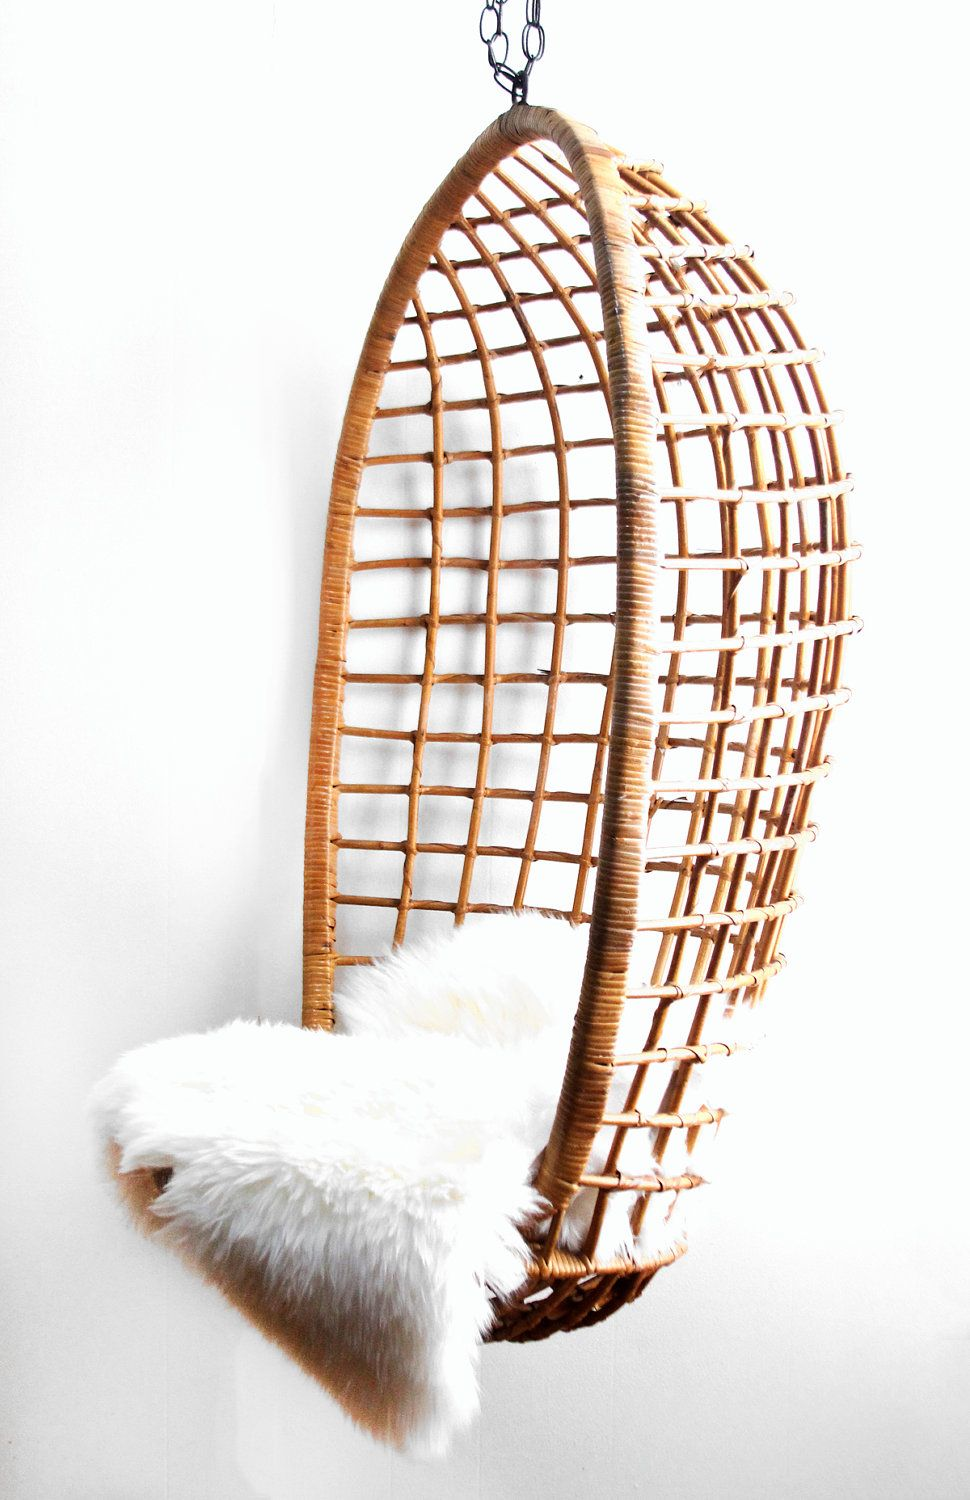 Vintage Hanging Rattan Egg Chair Hanging Chair Hanging Rattan Chair Swinging Chair